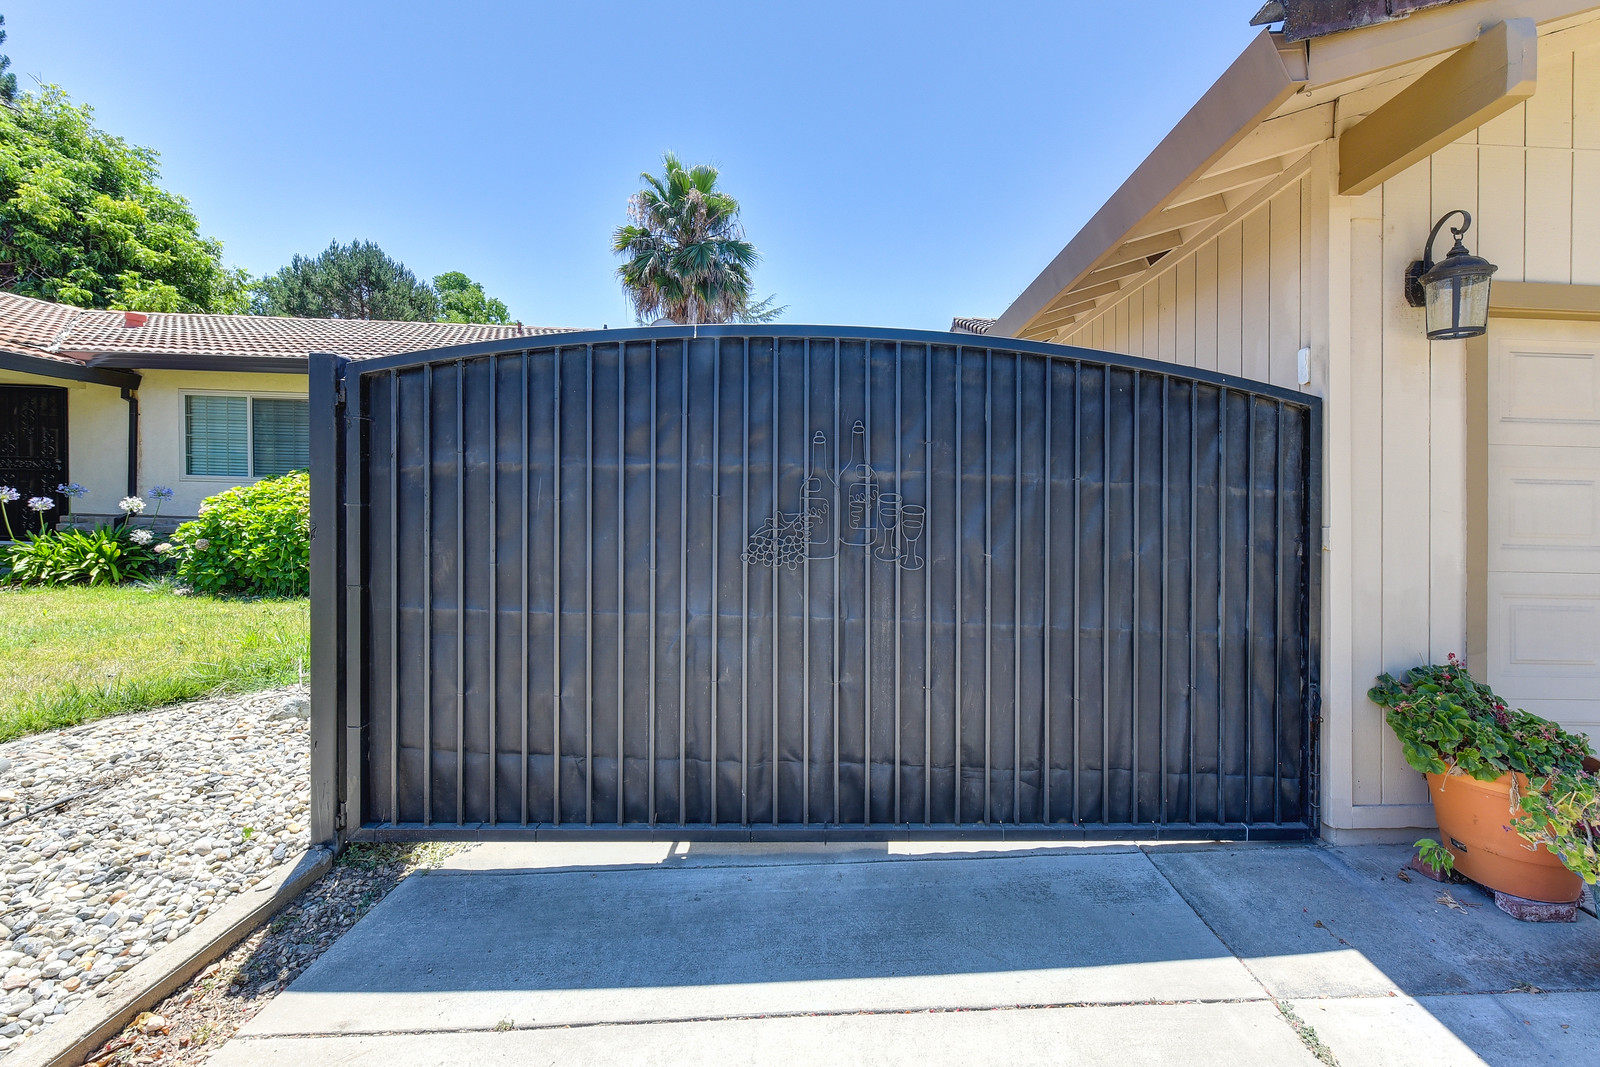 Gate for RV parking at 5342 Nyoda Way Carmichael California | Listed by Jesse Coffey with Keller Williams Realty